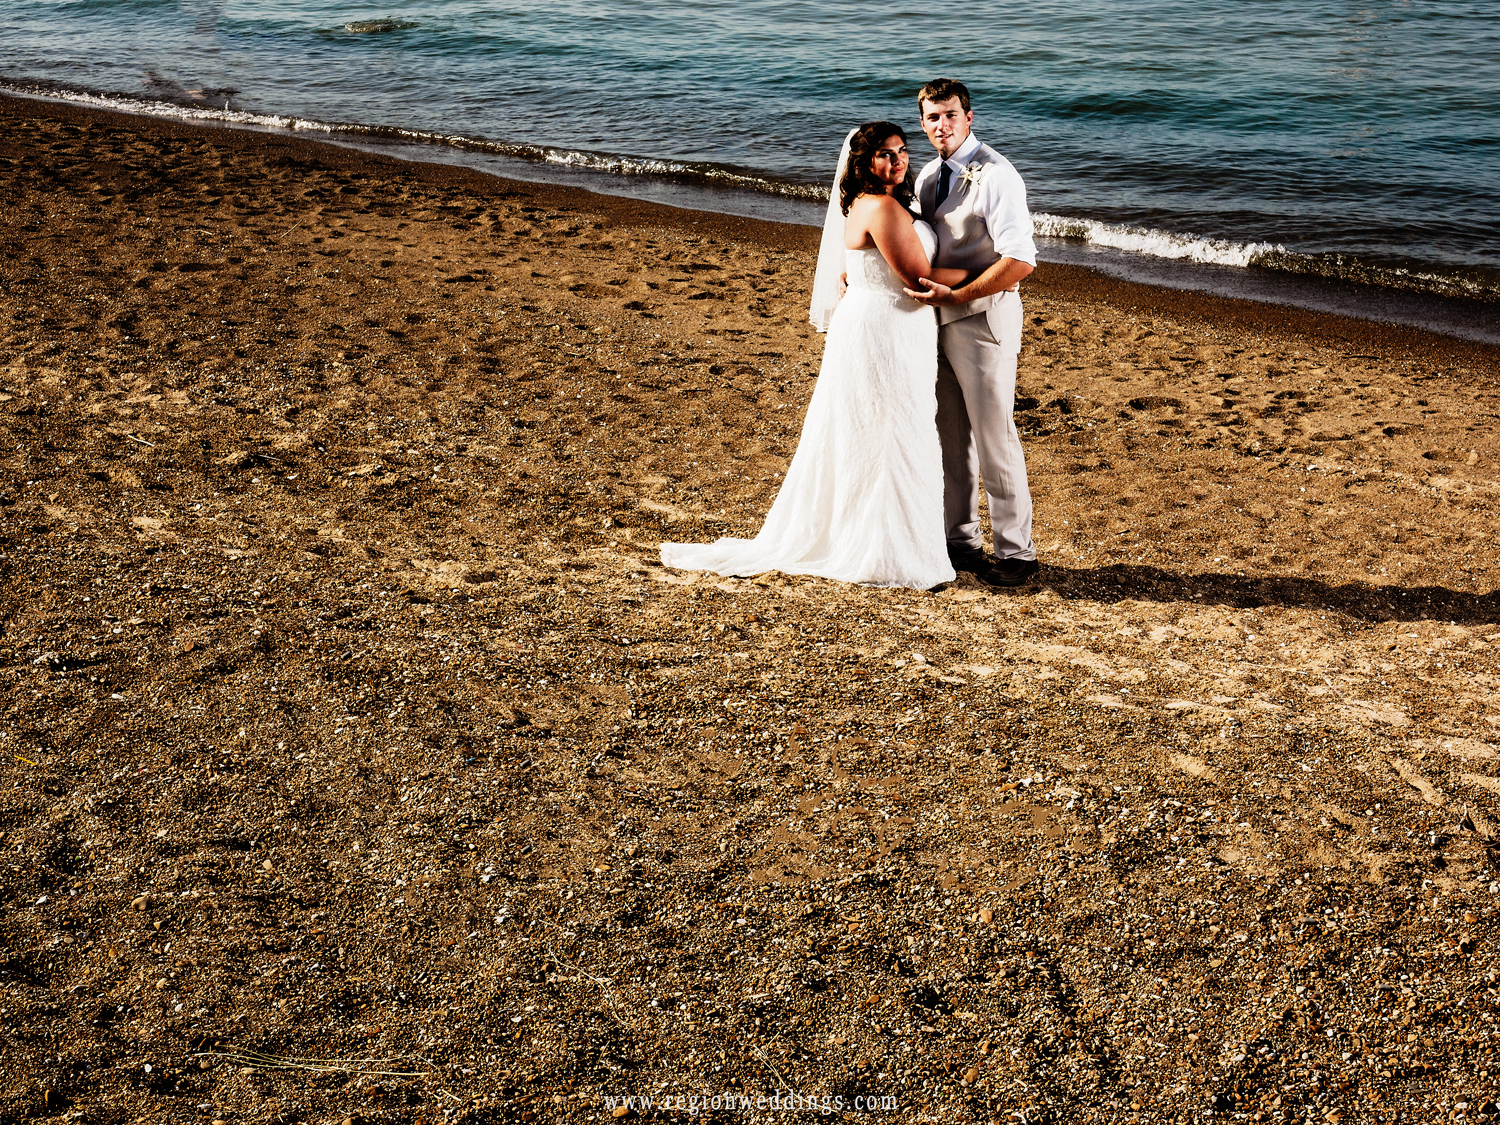 The bride and groom on a Lake Michigan beach as waves roll onto the shore.